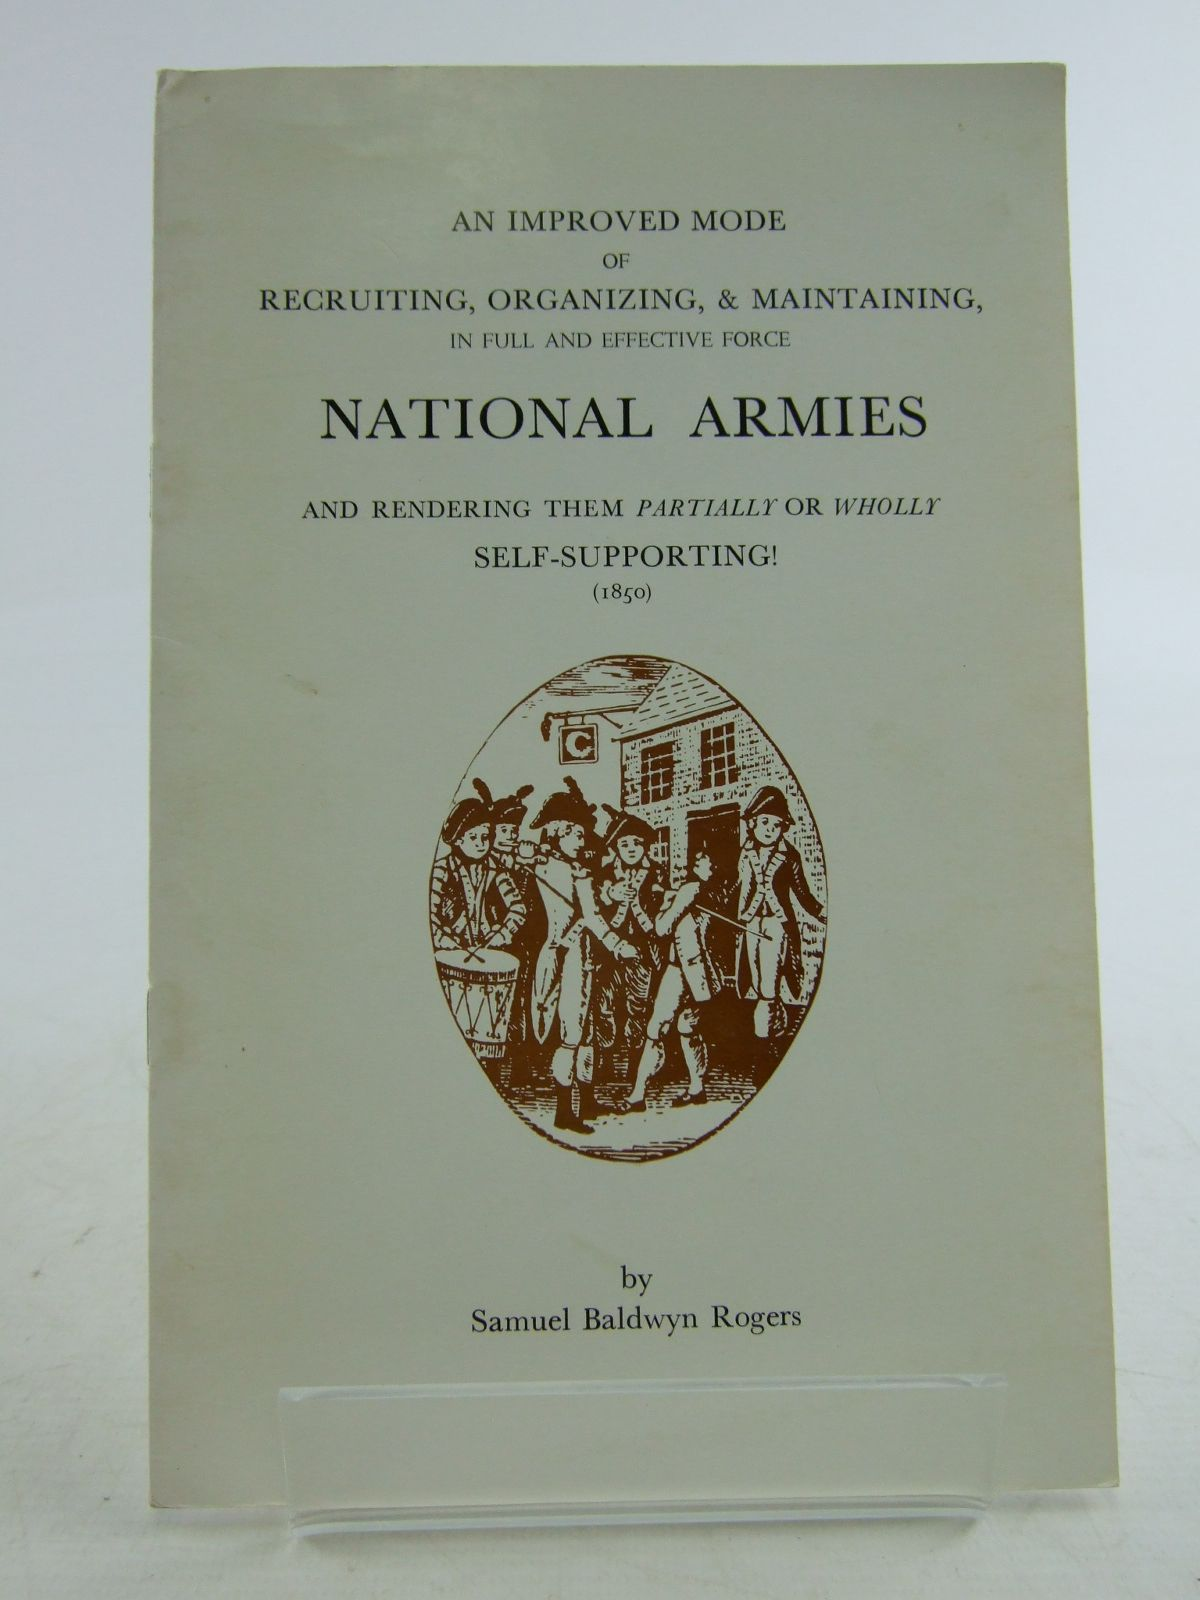 Photo of AN IMPROVED MODE OF RECRUITING, ORGANISING, & MAINTAINING, NATIONAL ARMIES- Stock Number: 1806874